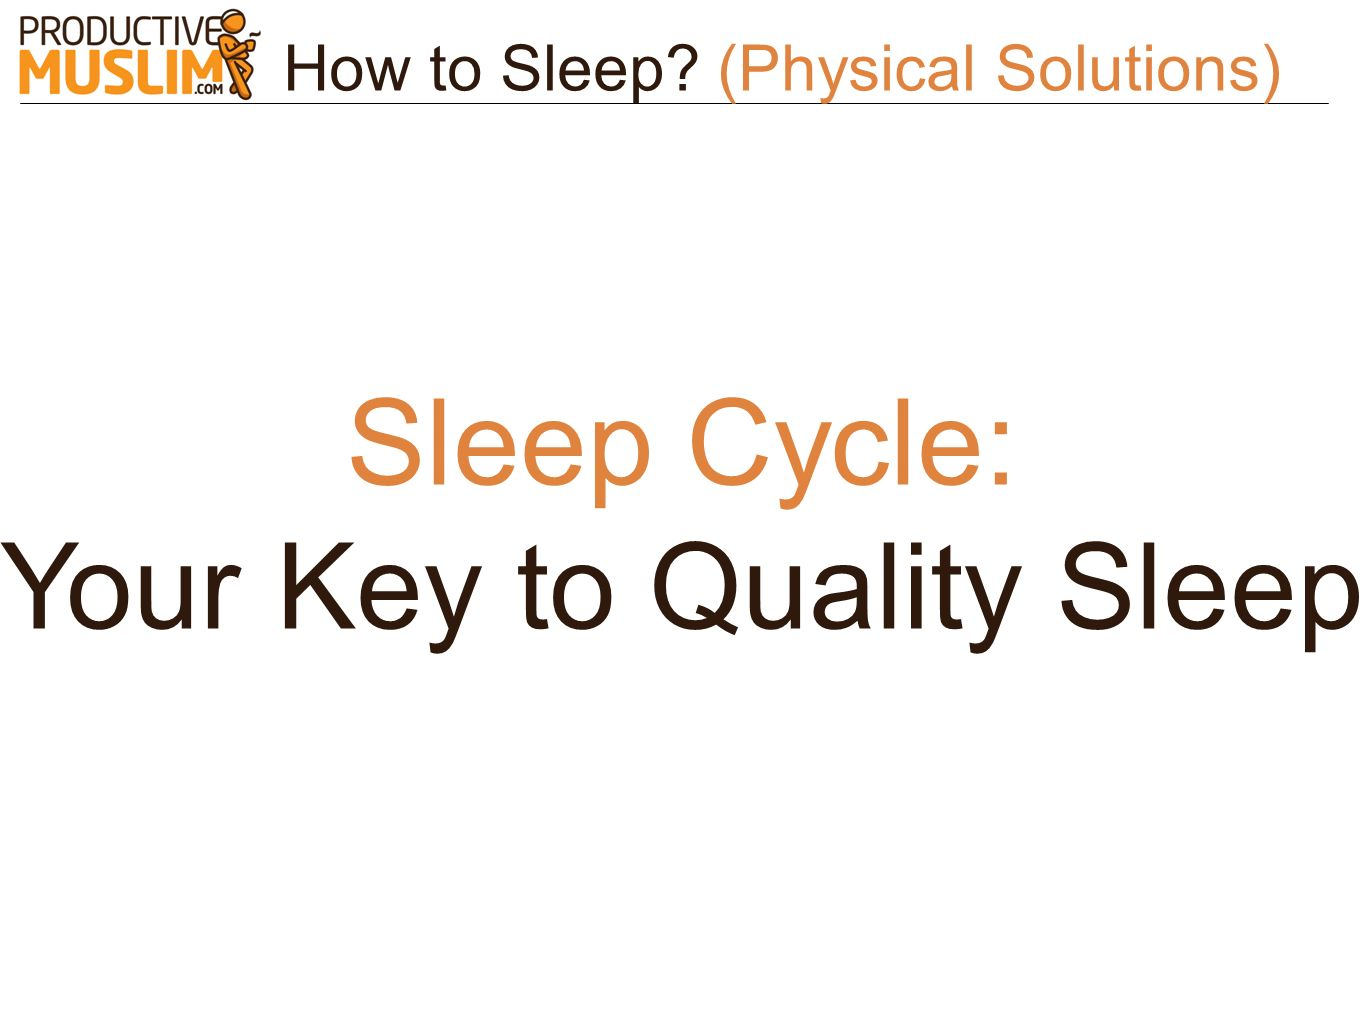 Your Key to Quality Sleep